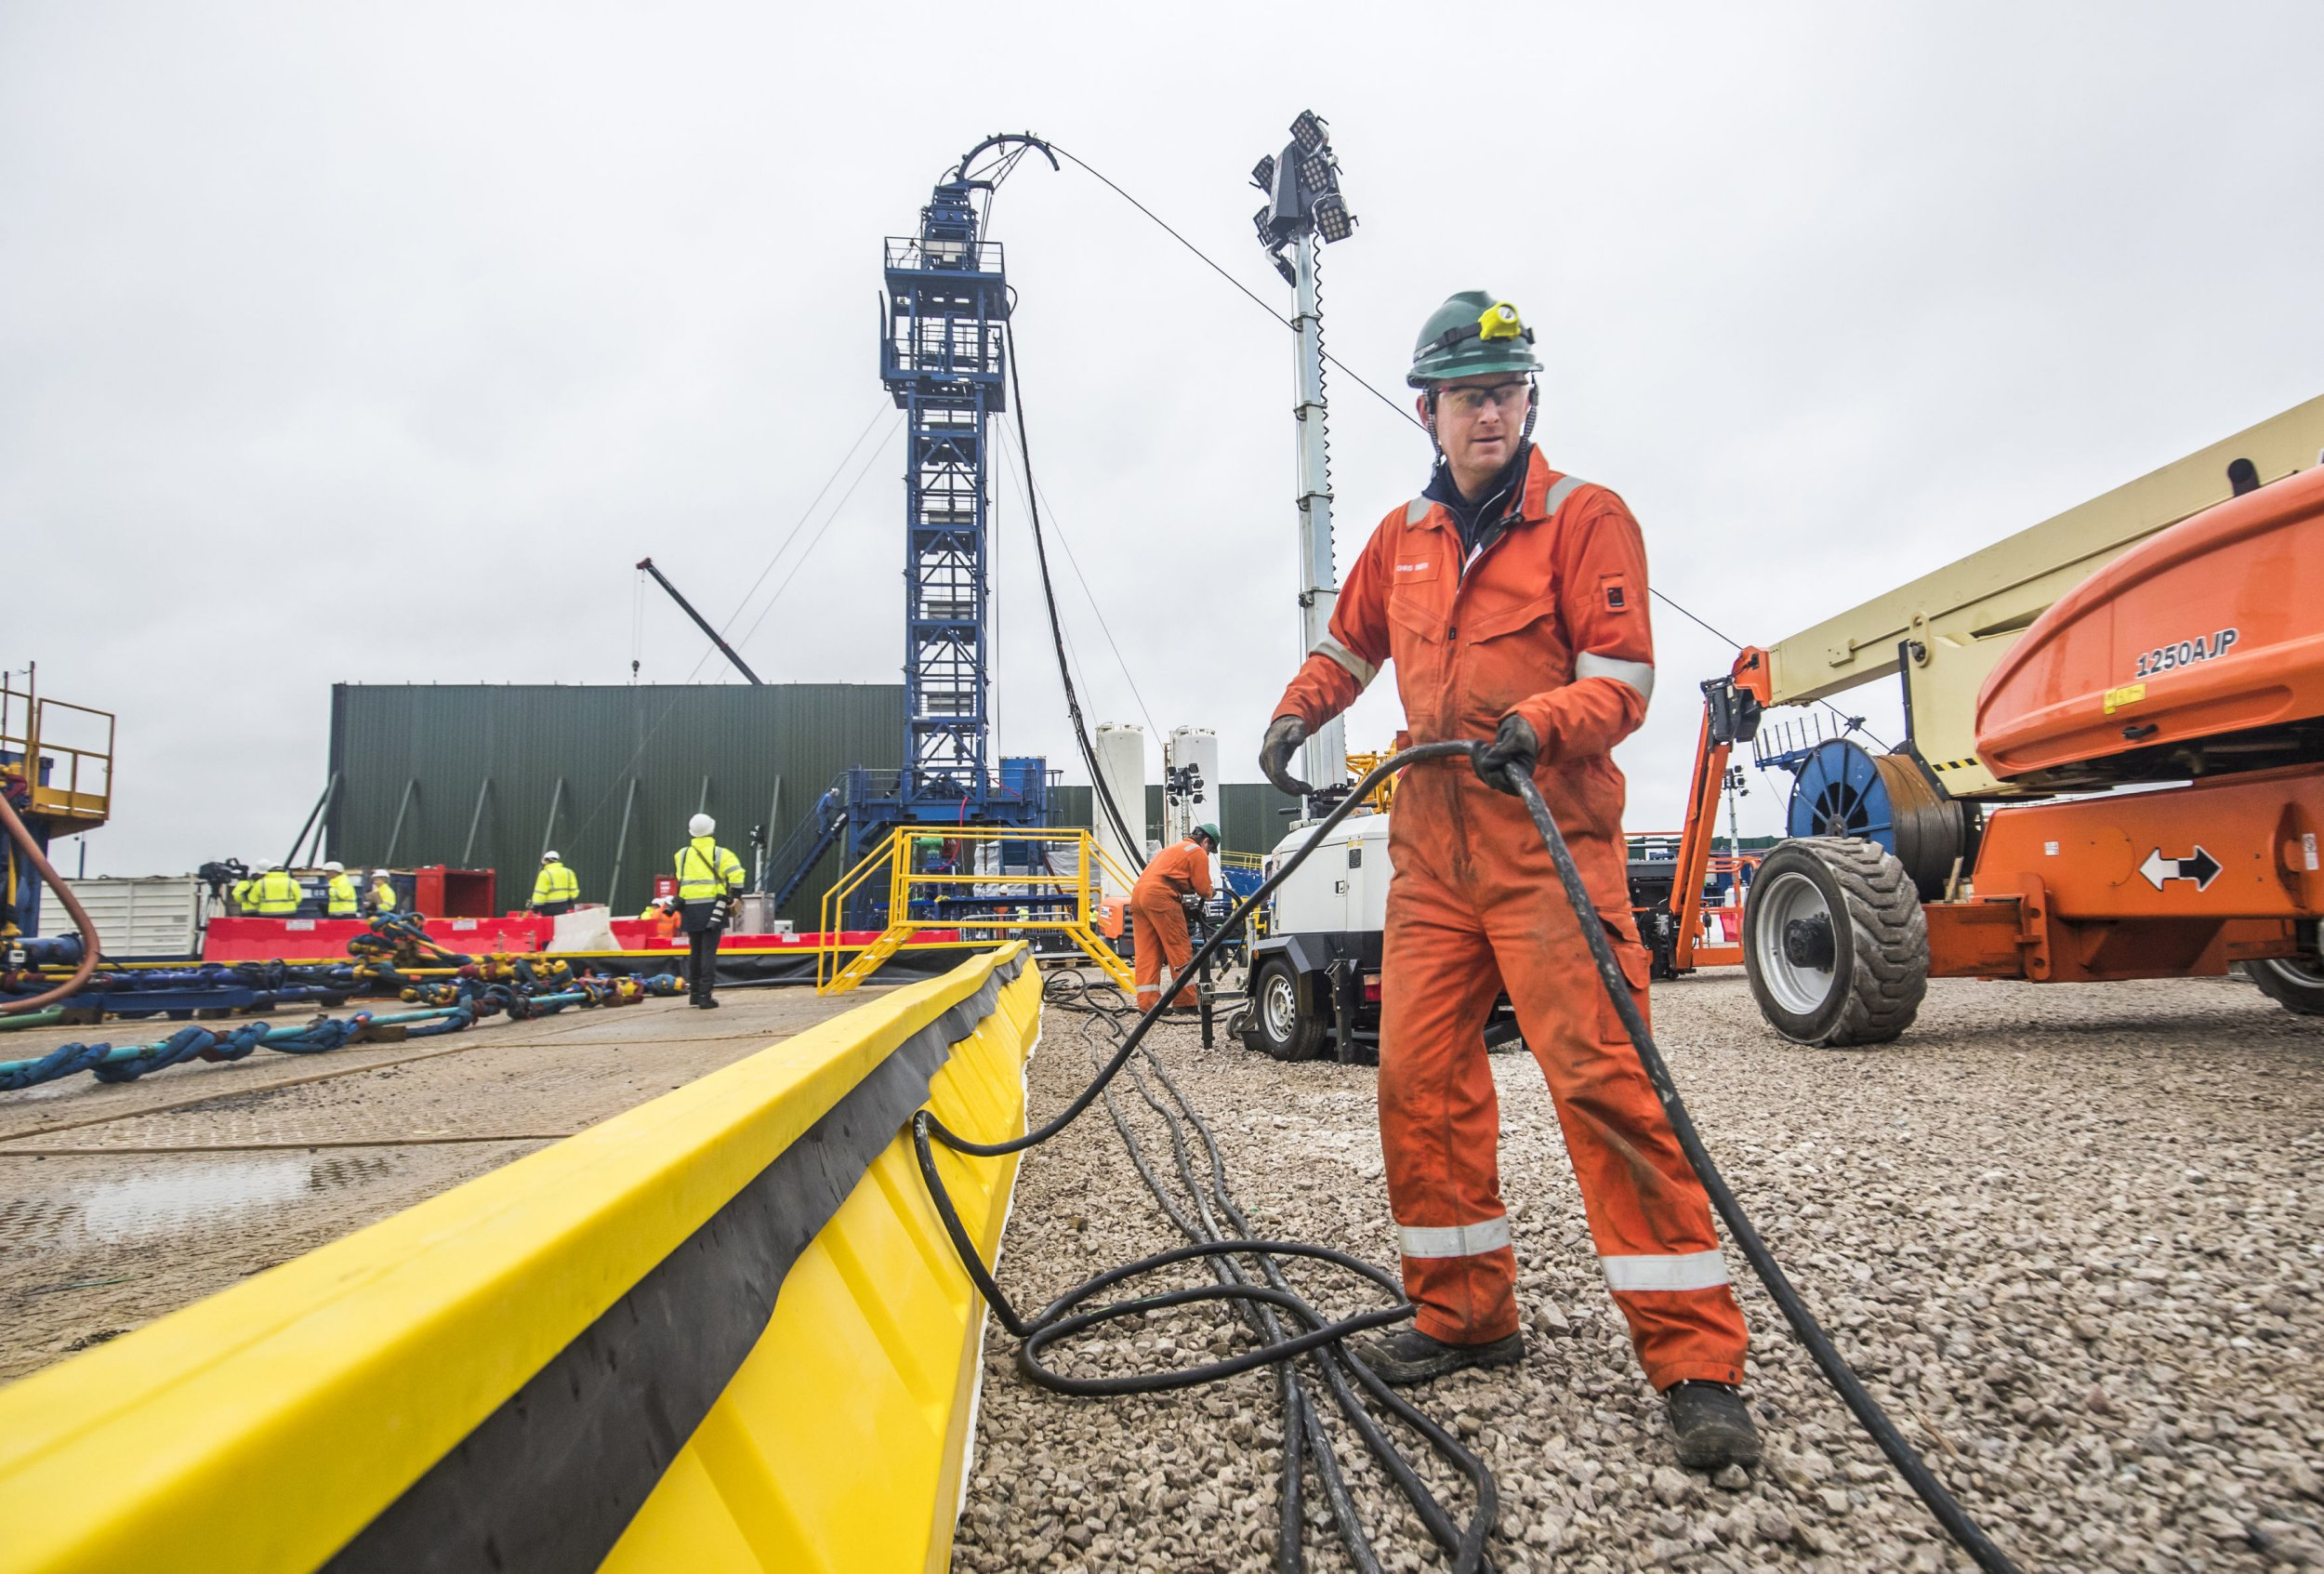 File photo dated 05/10/18 of a worker at the Cuadrilla fracking site in Preston New Road, Little Plumpton, Lancashire. Cuadrilla has confirmed it will continue fracking at the site despite a further tremor being detected underground. PRESS ASSOCIATION Photo. Issue date: Wednesday October 24, 2018. See PA story ENVIRONMENT Fracking. Photo credit should read: Danny Lawson/PA Wire